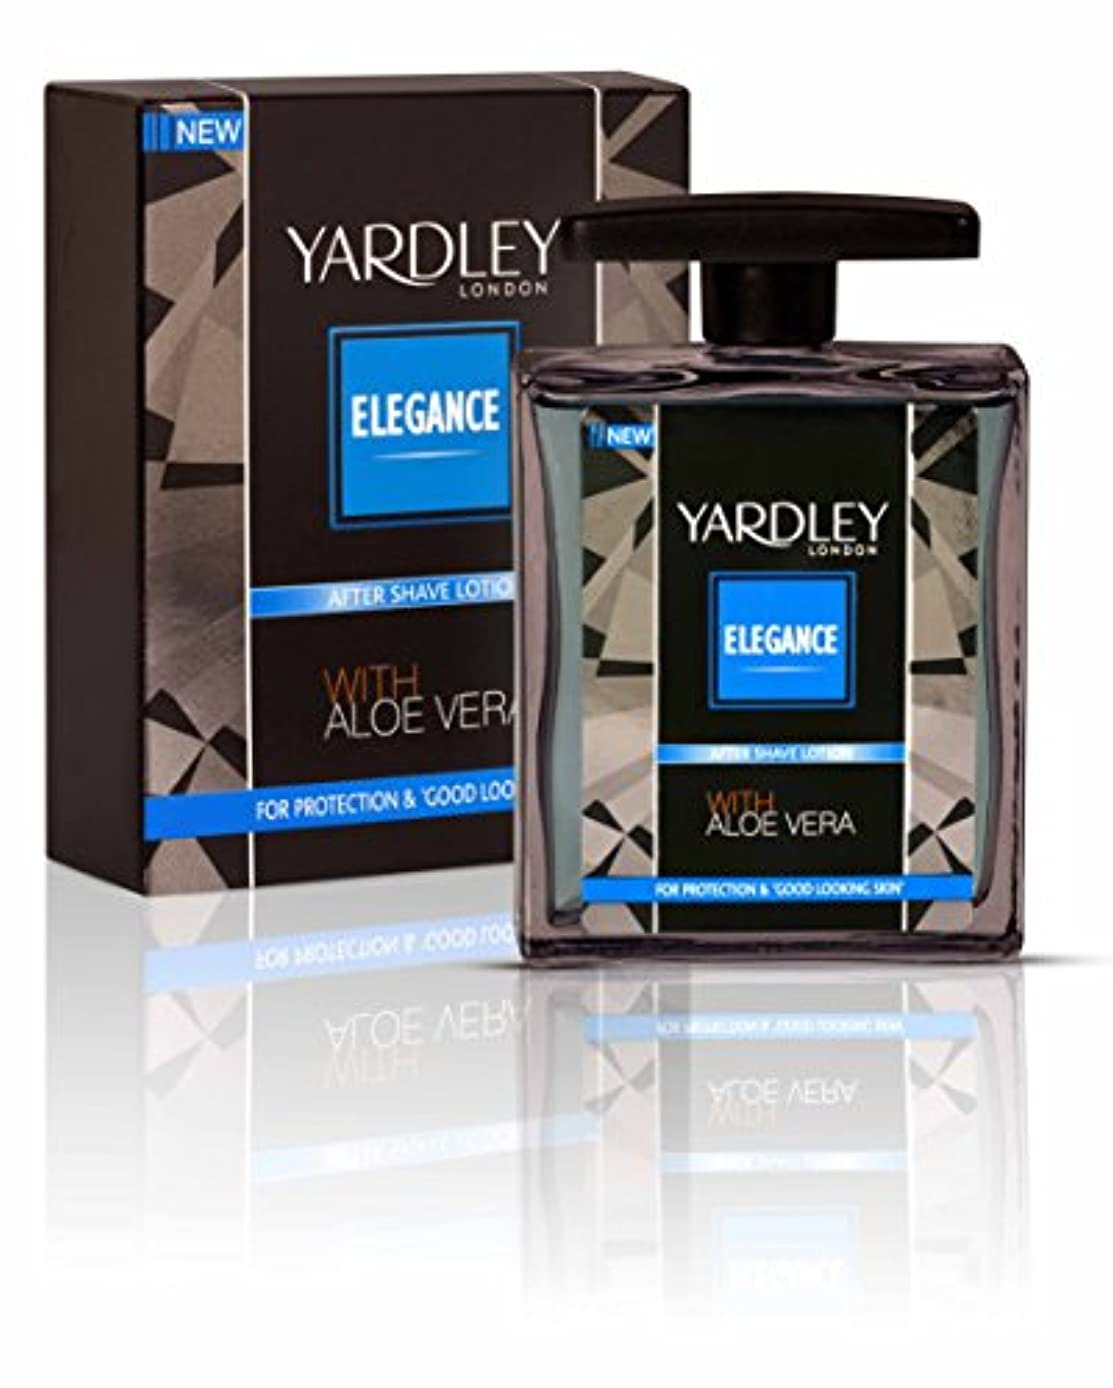 州クリップ蝶日の出Yardley London Elegance After Shave Lotion With Aloe Vera 50ml